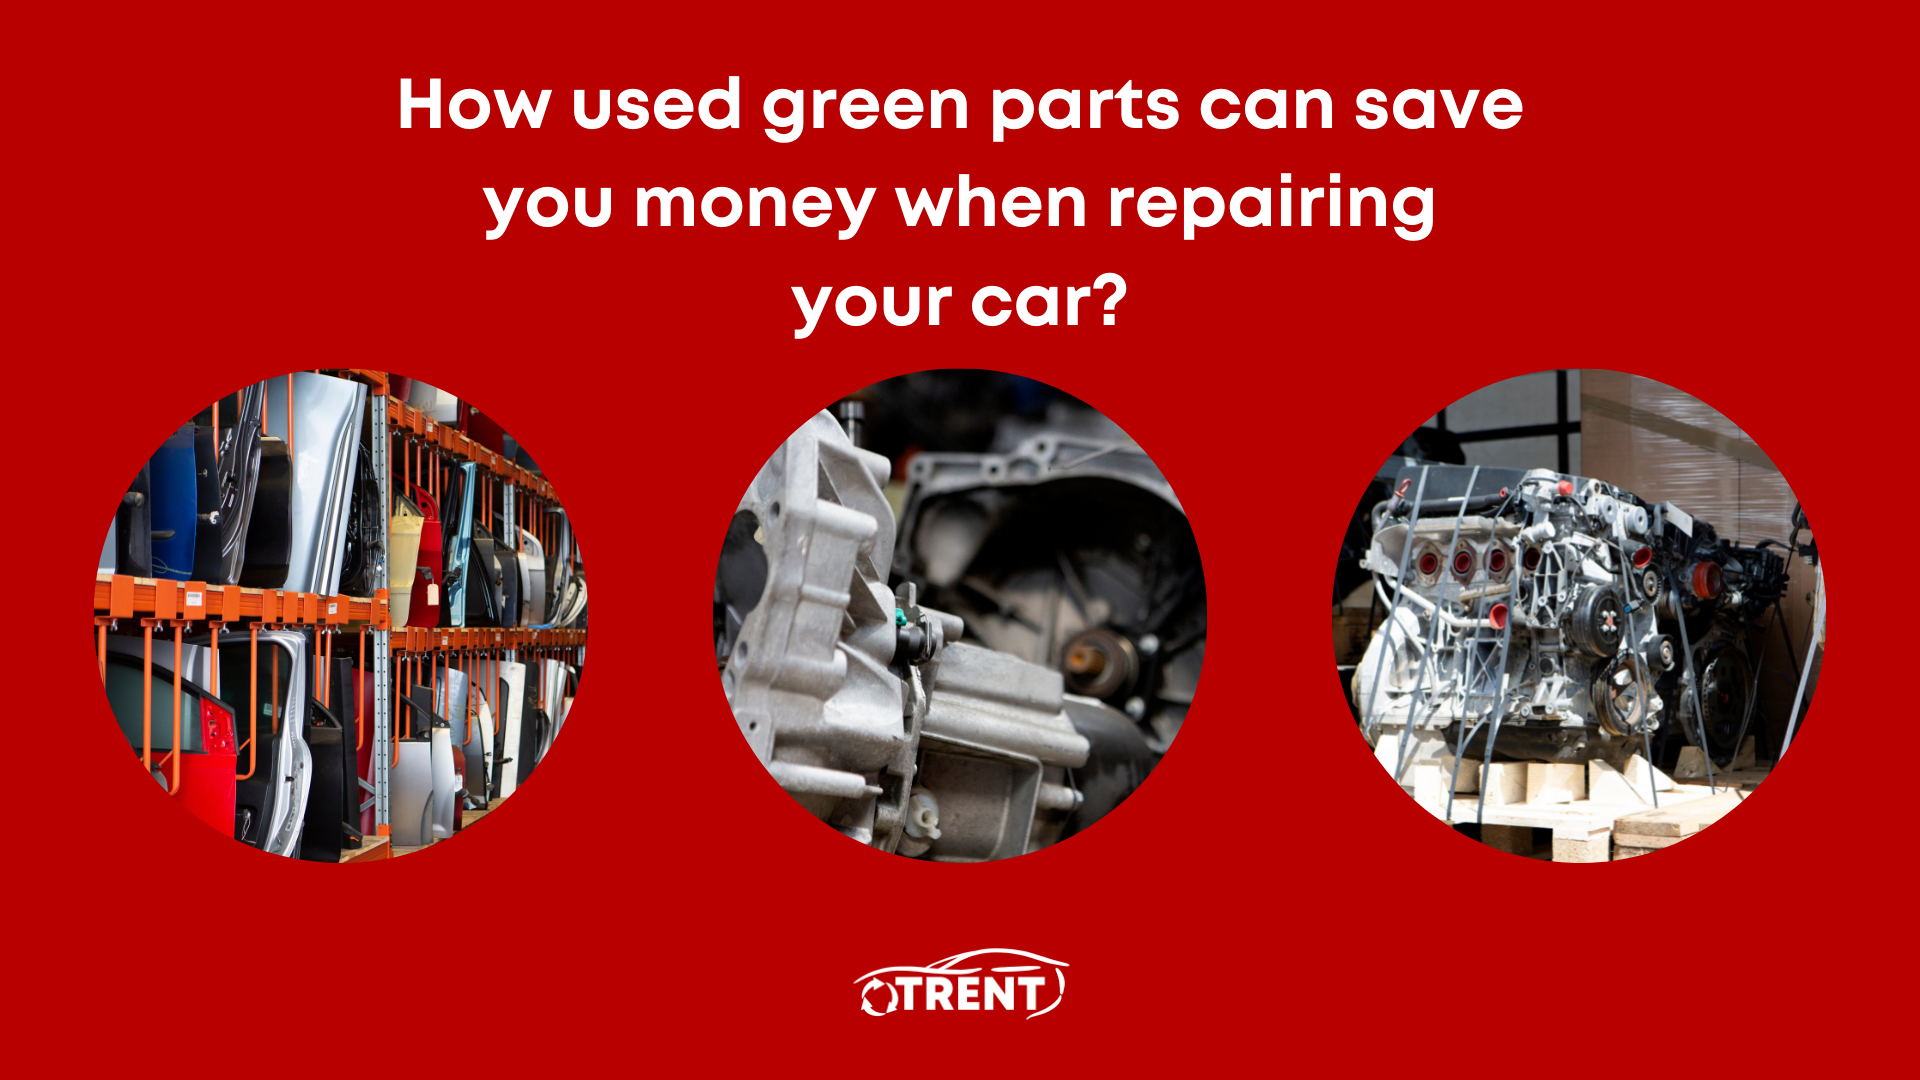 How used green parts can save you money when repairing your car?